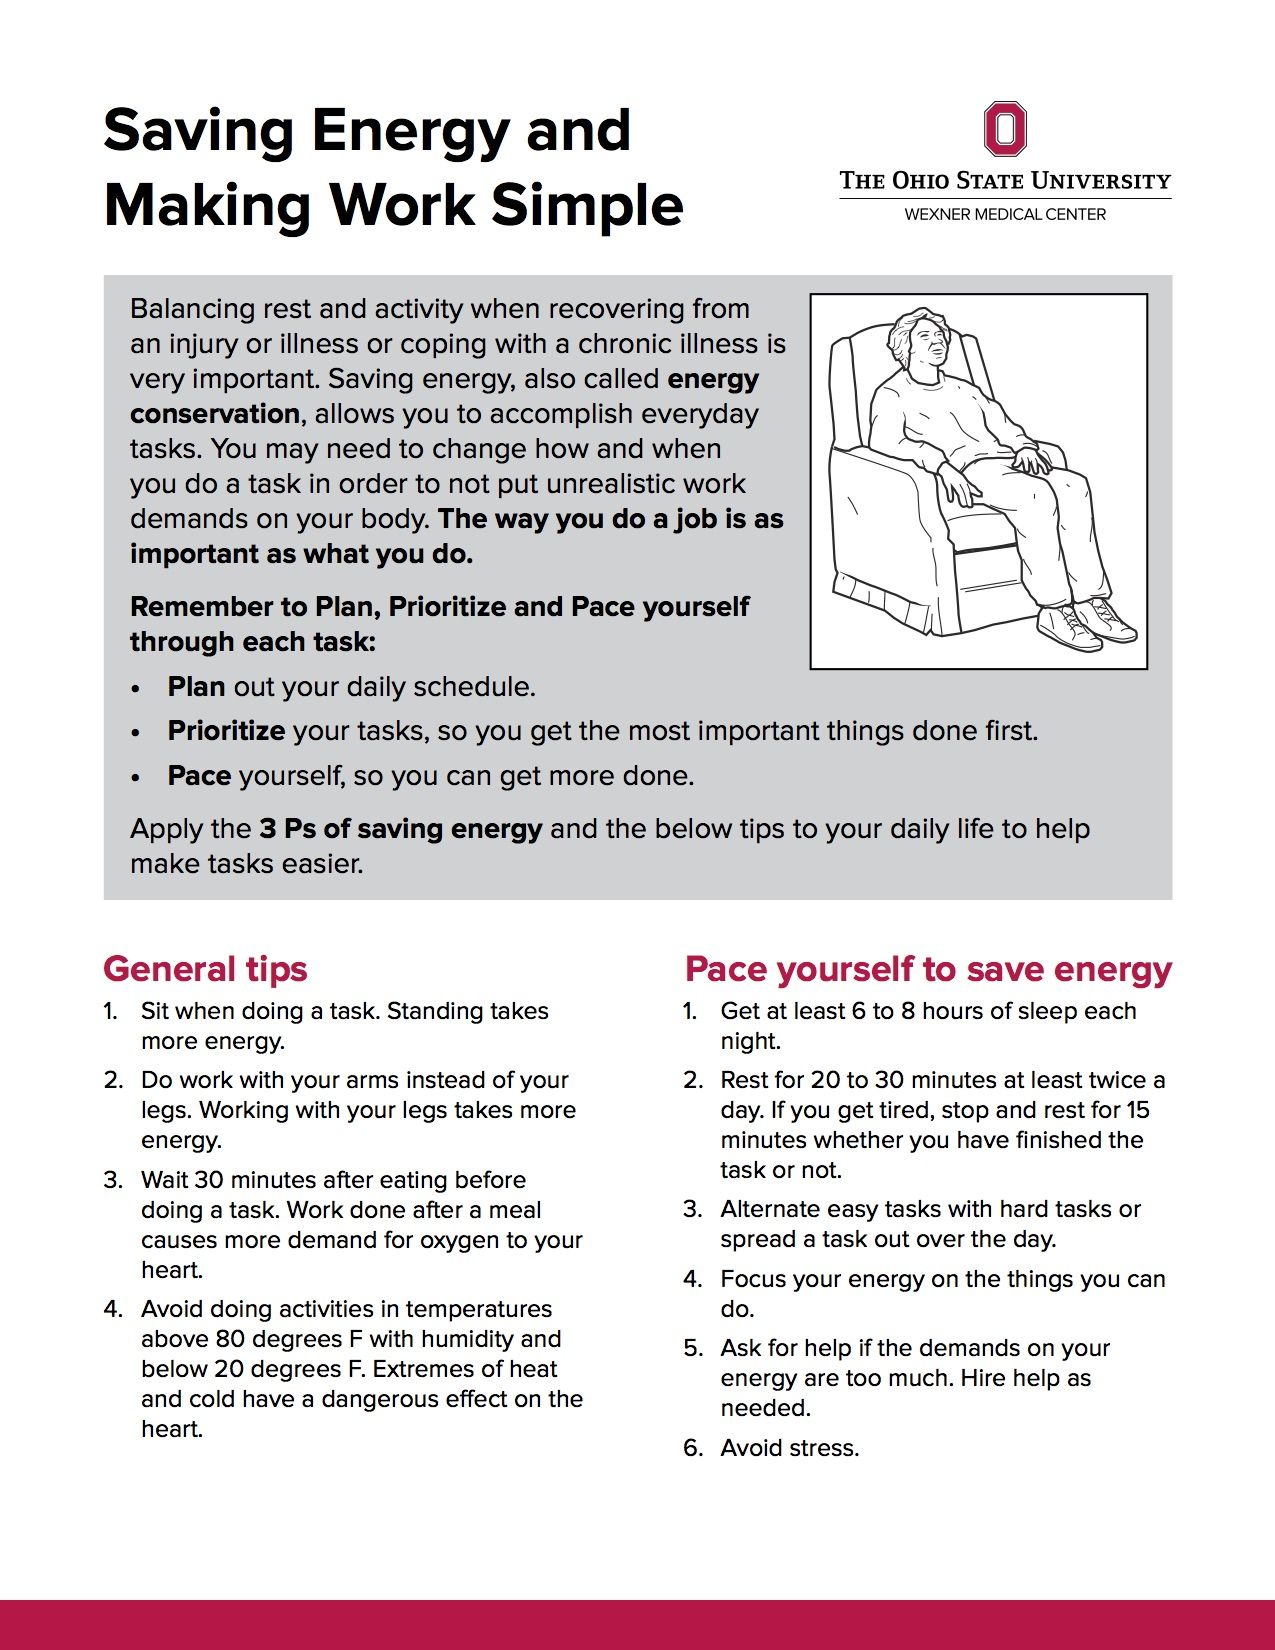 Energy conservation techniques for copd pdf